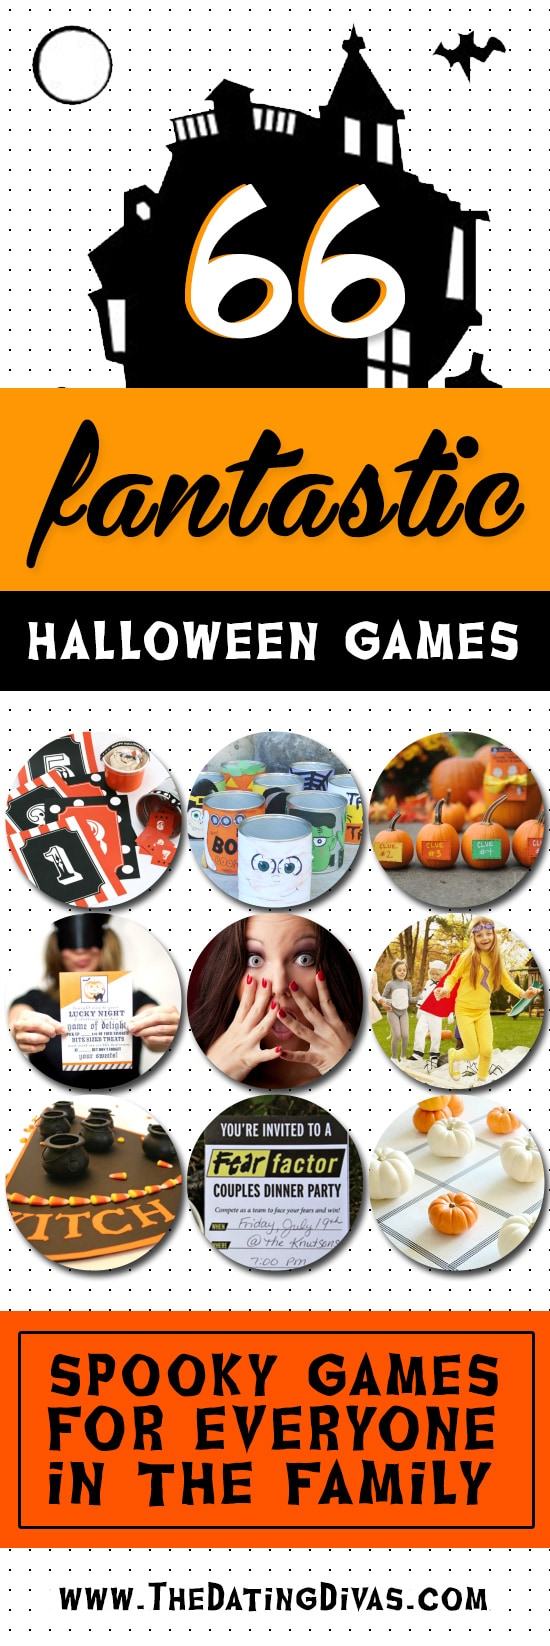 Impressive Adults Drinking Whole Family Dating Divas Scary Halloween Party Games Halloween Games Halloween Games Adults Halloween Party Games art Halloween Party Games For Adults